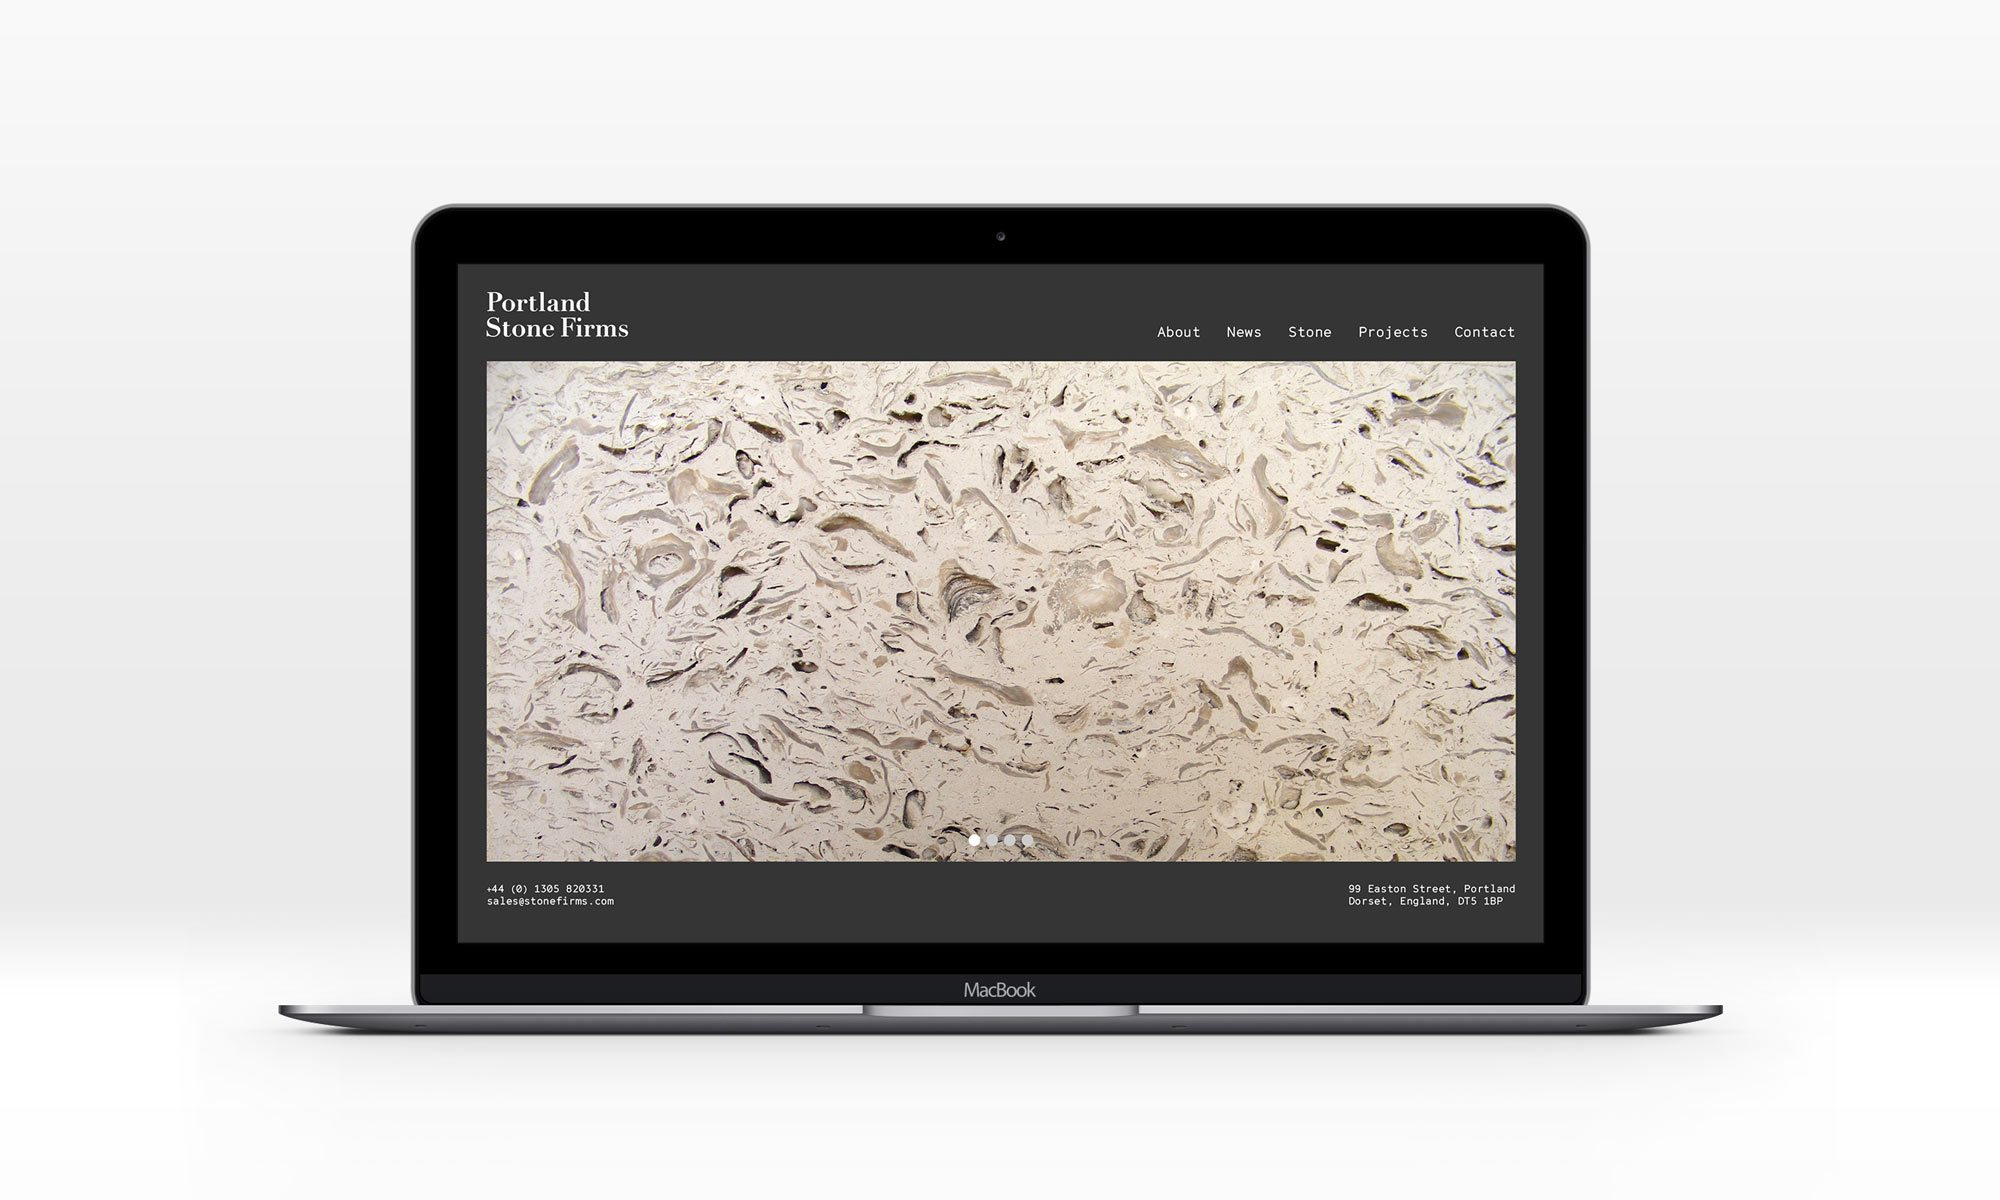 Portland Stone Firms website